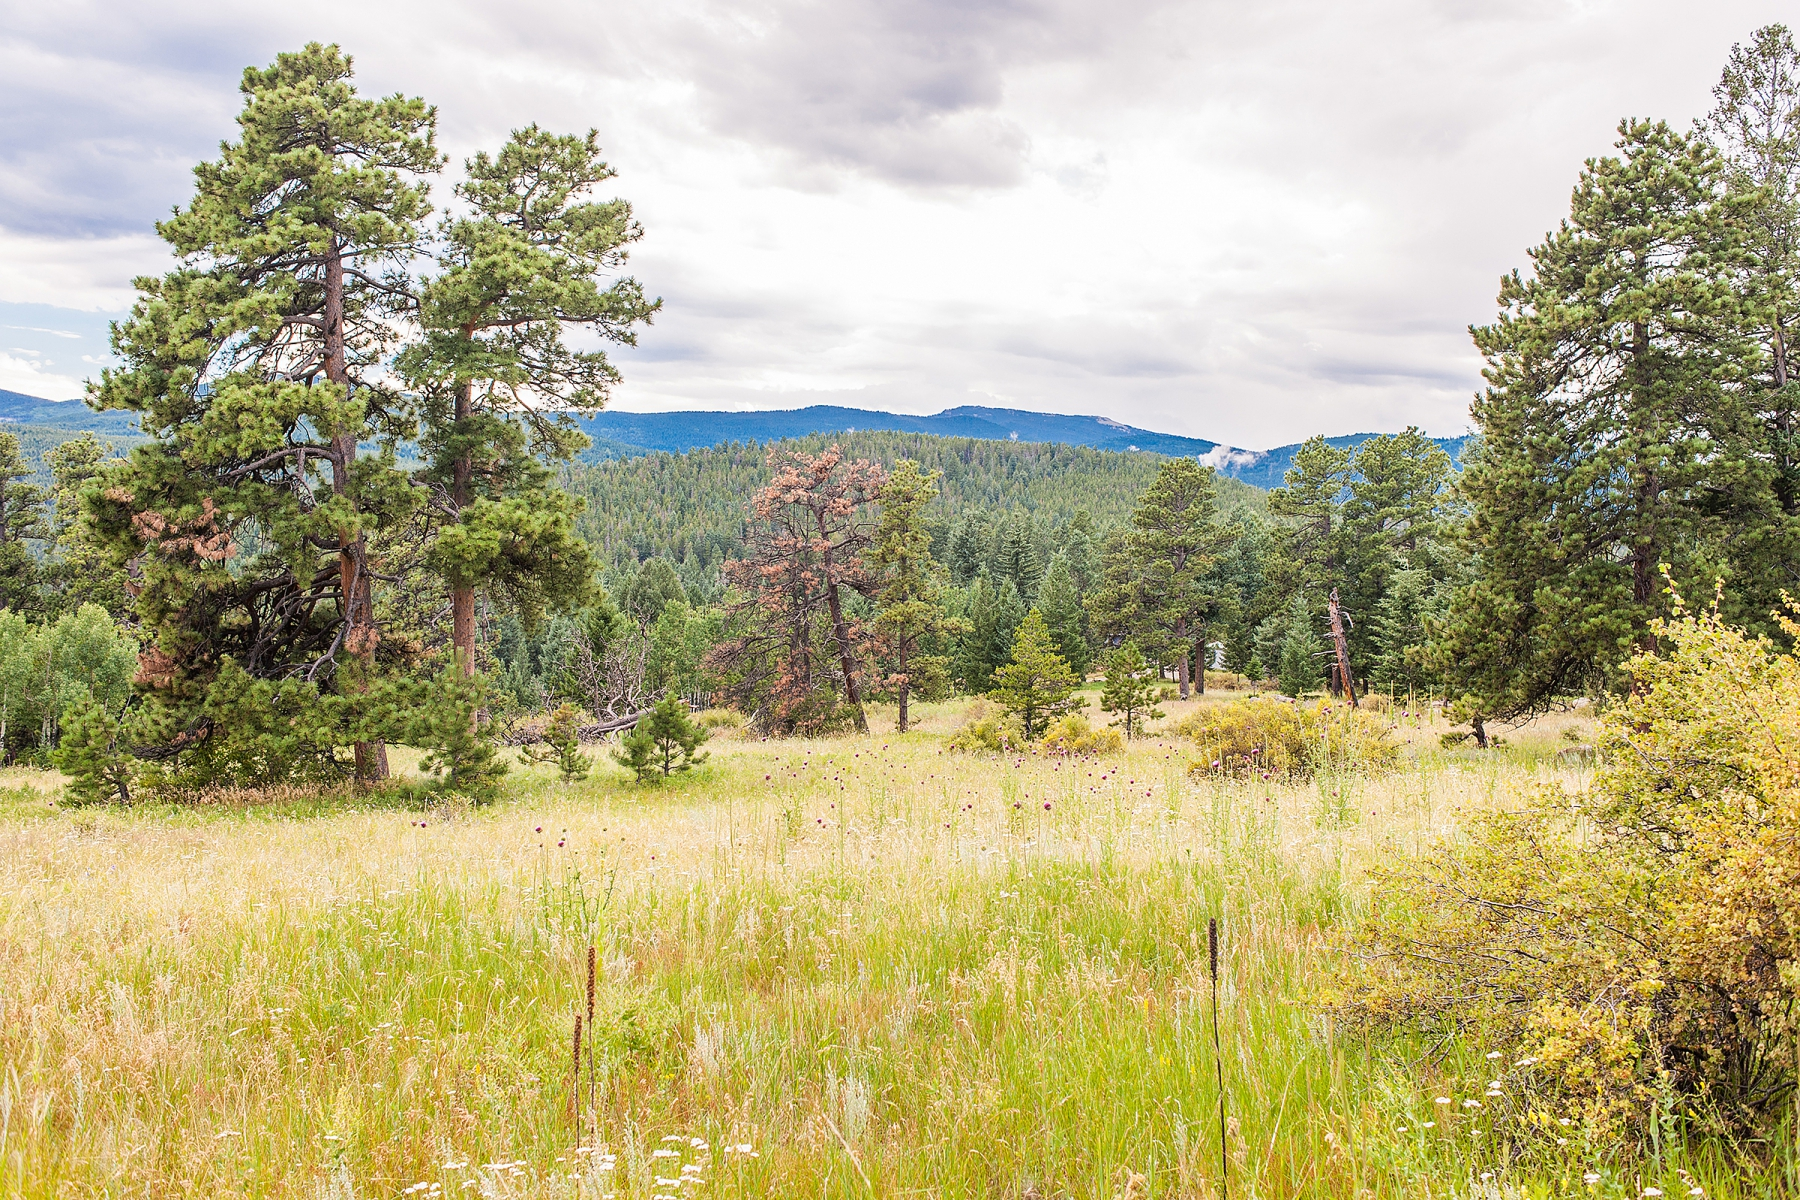 Additional photo for property listing at Double N Ranch 33391 Buffalo Park Road Evergreen, Colorado 80439 United States